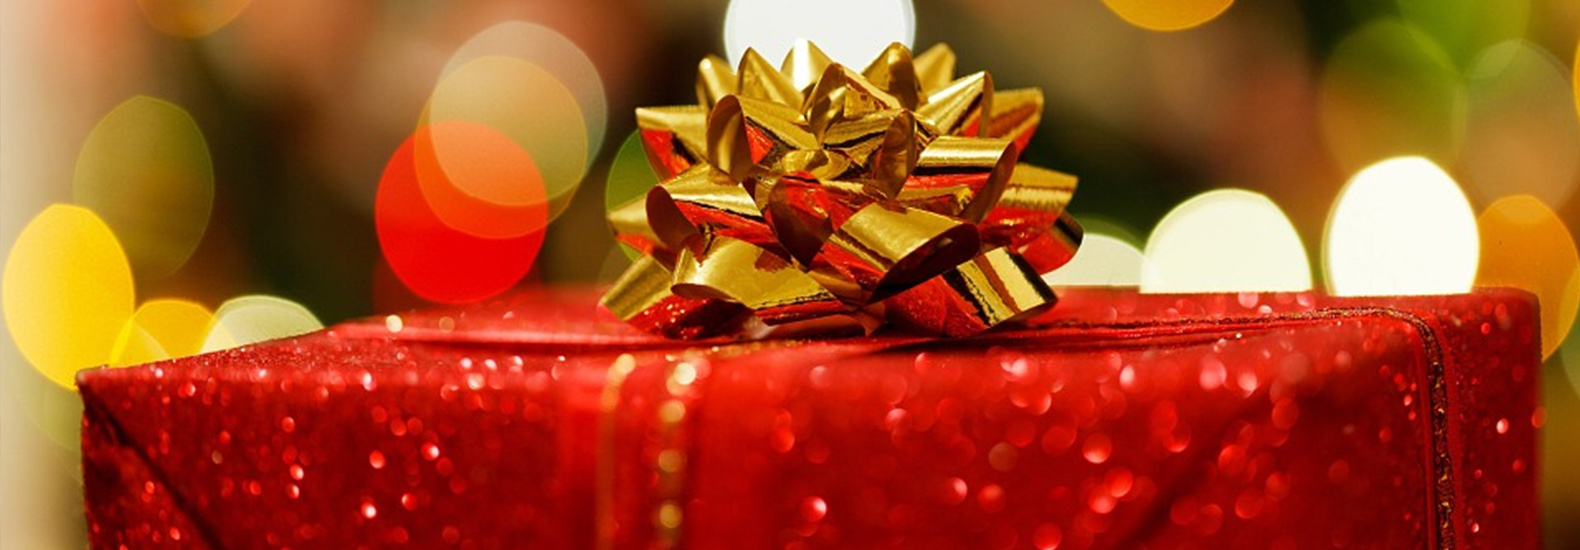 10 eco-friendly holiday gift ideas for friends